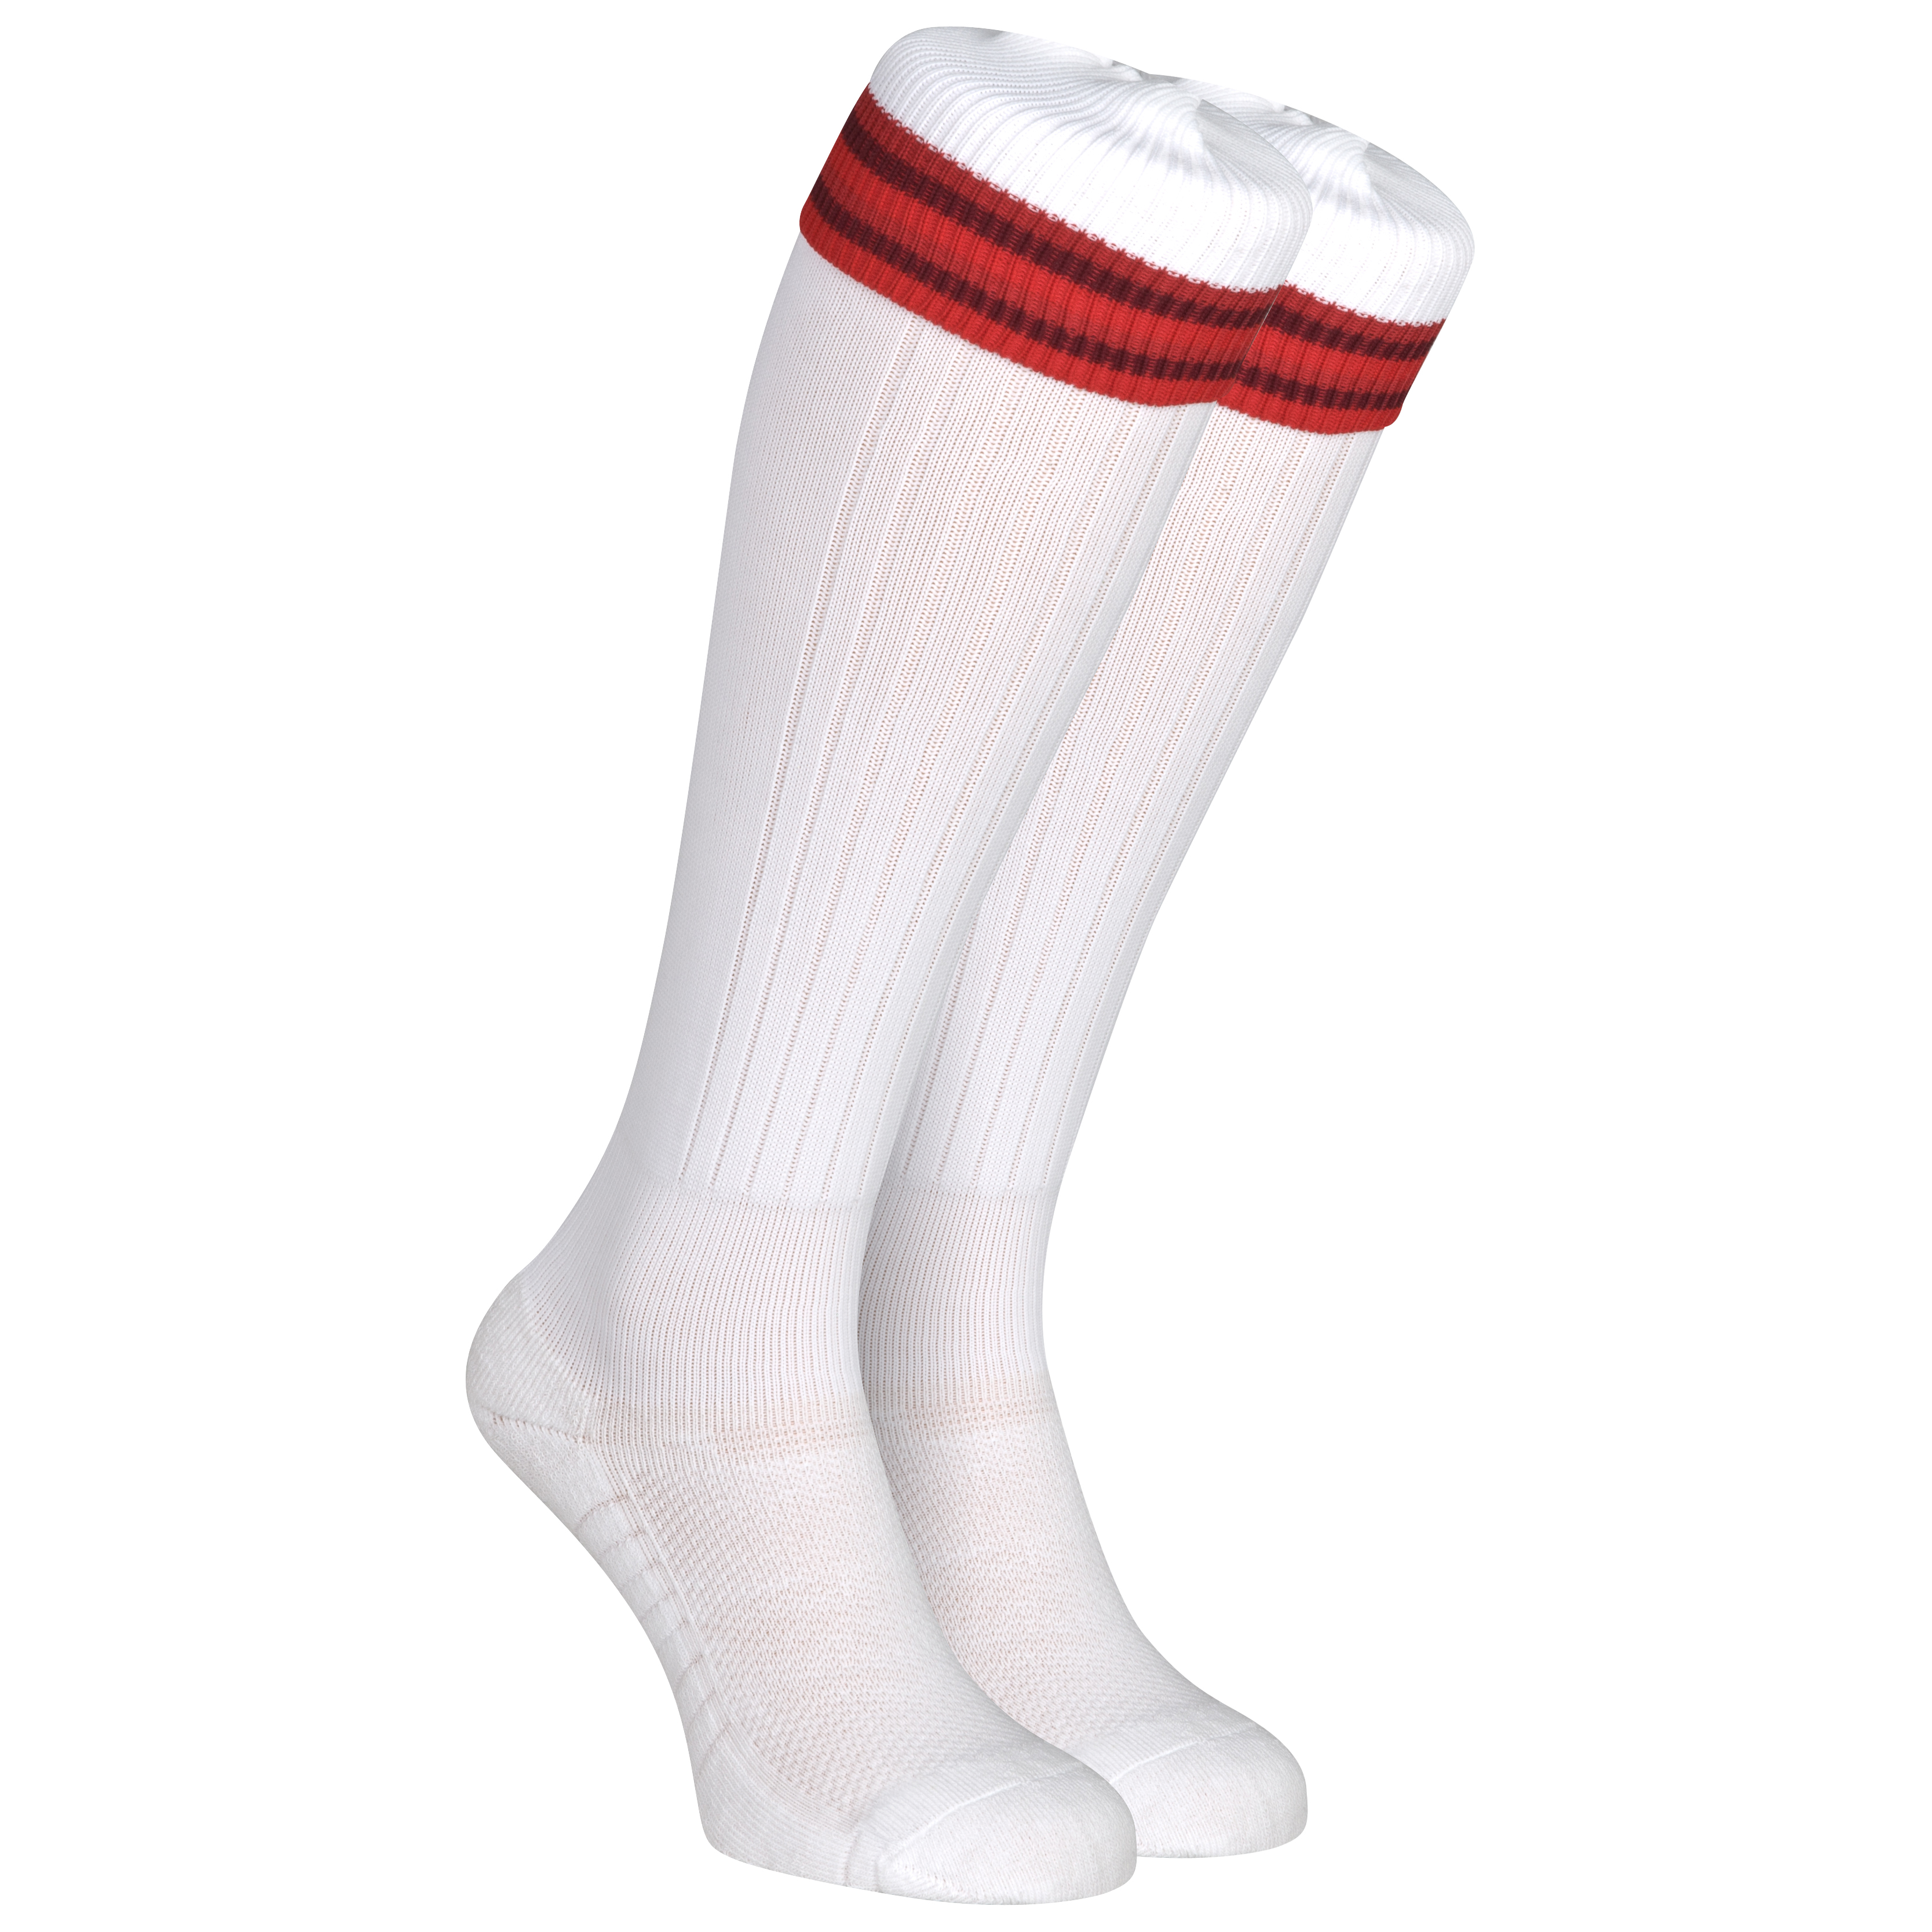 England Home Sock 2012/13